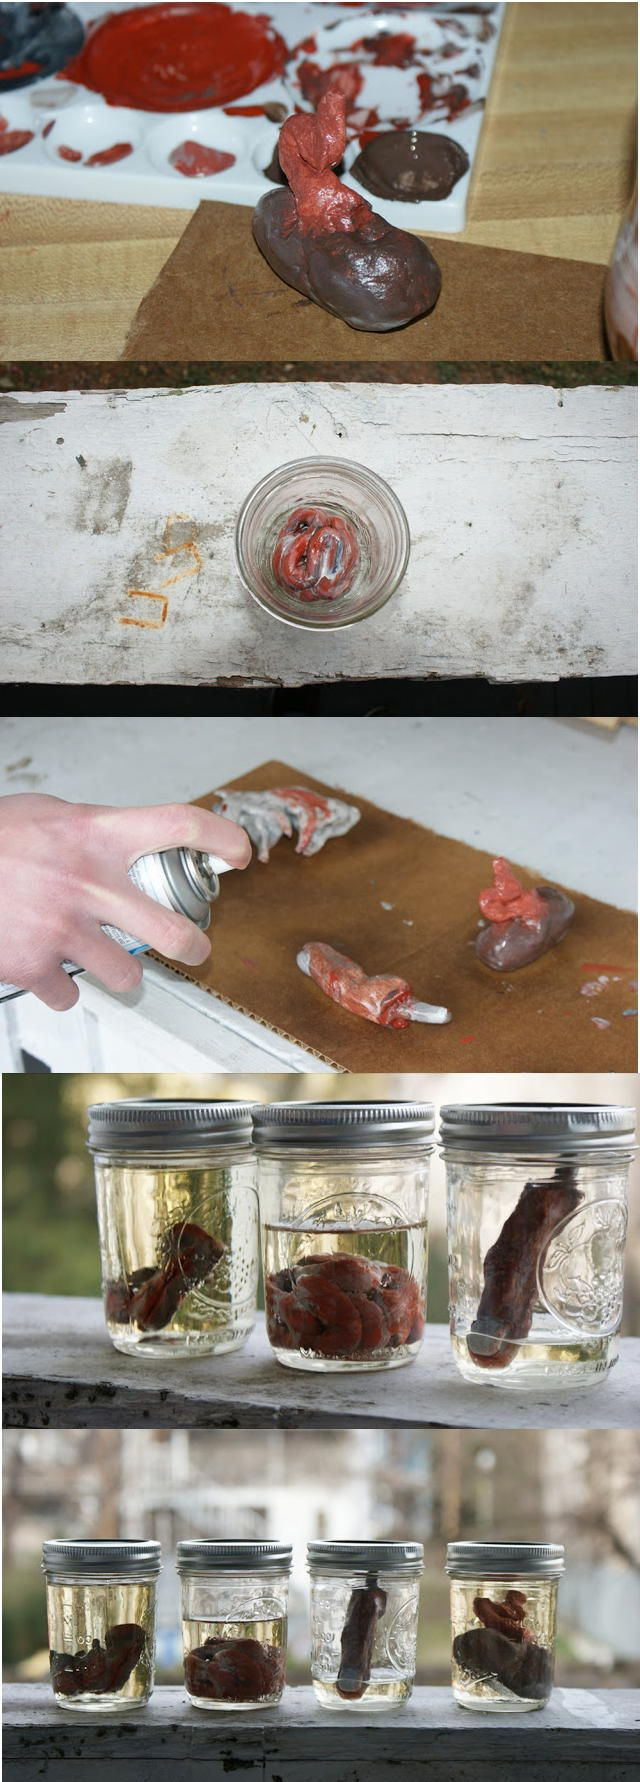 DIY Halloween Decor // Create these creepy mason jars filled with fake preserved organs inspired by the first season of American Horror Story for Halloween!